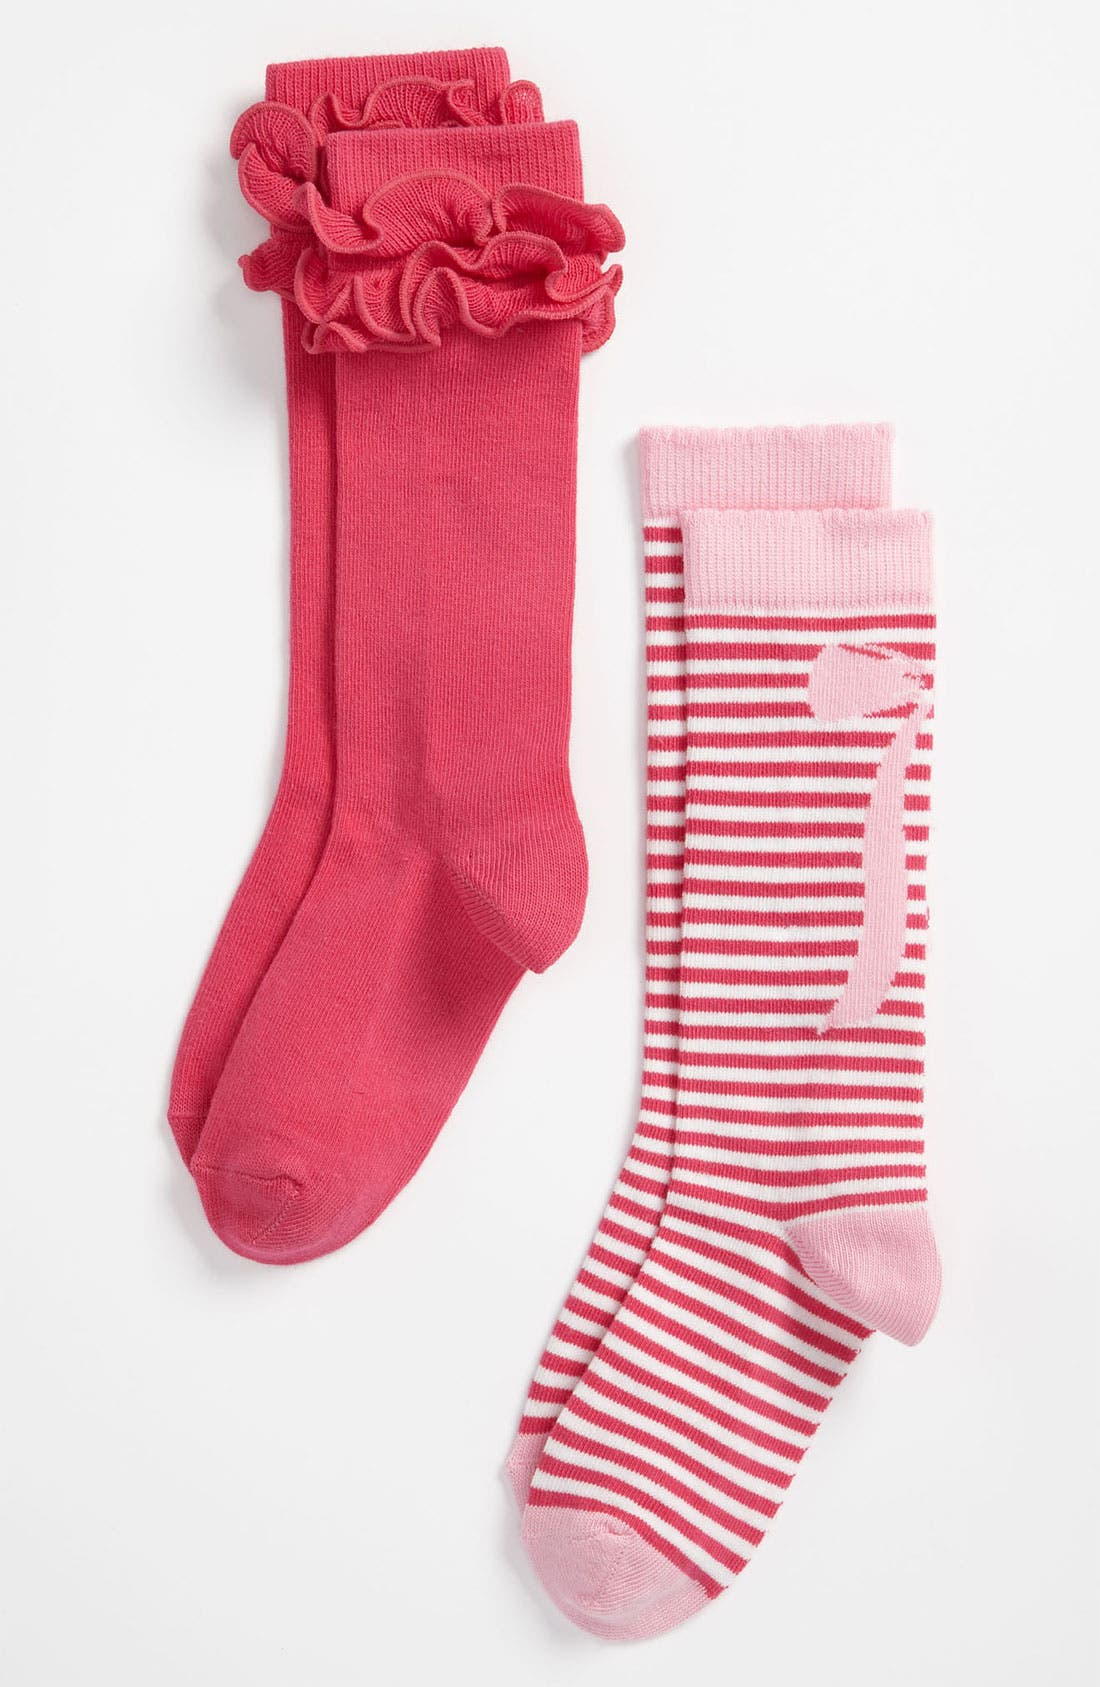 Alternate Image 1 Selected - Nordstrom Knee High Socks (2-Pack) (Toddler, Little Girls & Big Girls)